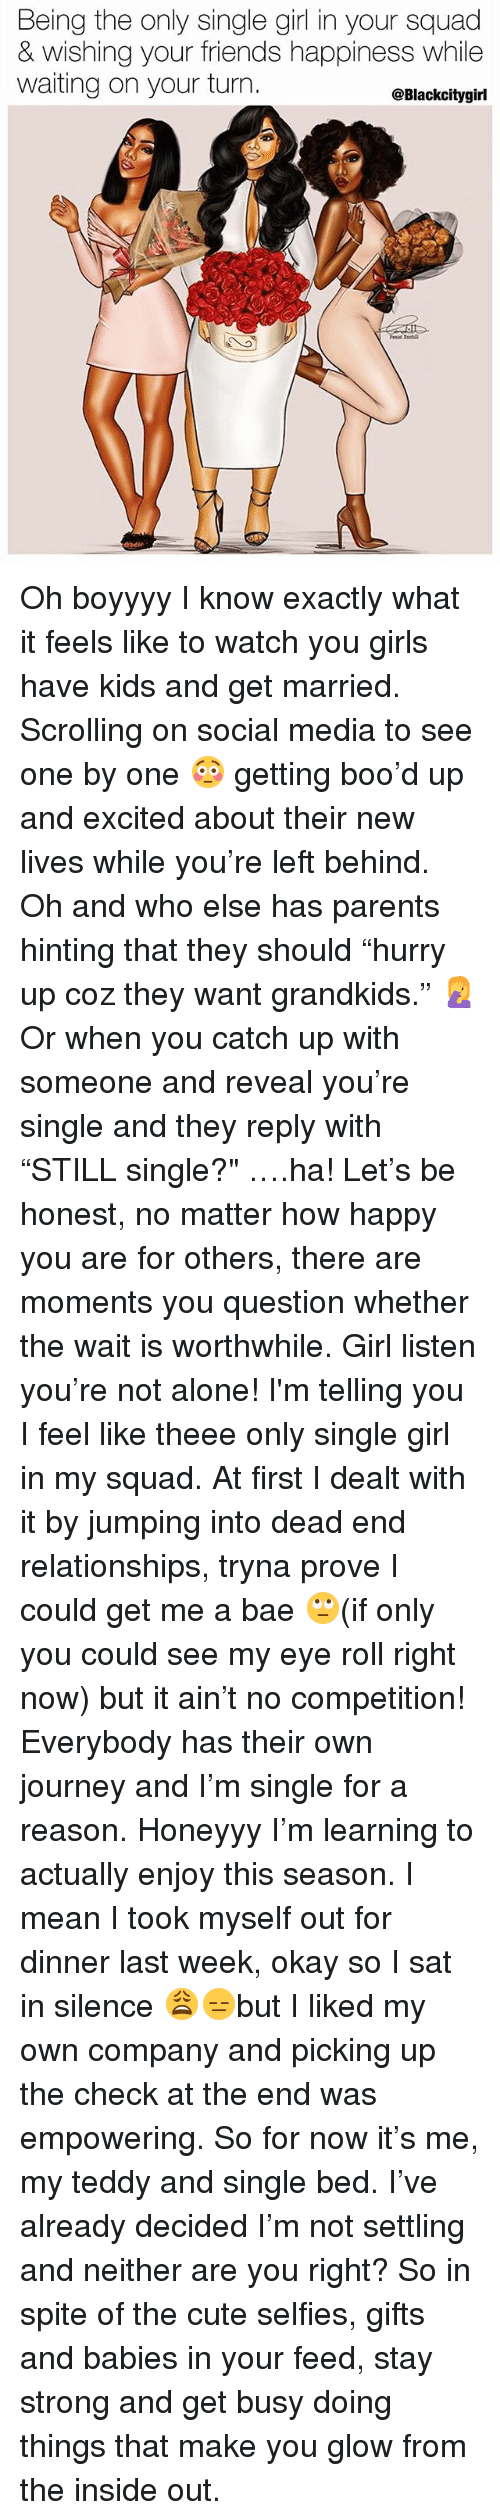 """Being Alone, Bae, and Boo: Being the only single girl in your squad  & wishing your friends happiness while  waiting on your turn  @Blackcitygirl Oh boyyyy I know exactly what it feels like to watch you girls have kids and get married. Scrolling on social media to see one by one 😳 getting boo'd up and excited about their new lives while you're left behind. Oh and who else has parents hinting that they should """"hurry up coz they want grandkids."""" 🤦♀️ Or when you catch up with someone and reveal you're single and they reply with """"STILL single?"""" ….ha! Let's be honest, no matter how happy you are for others, there are moments you question whether the wait is worthwhile. Girl listen you're not alone! I'm telling you I feel like theee only single girl in my squad. At first I dealt with it by jumping into dead end relationships, tryna prove I could get me a bae 🙄(if only you could see my eye roll right now) but it ain't no competition! Everybody has their own journey and I'm single for a reason. Honeyyy I'm learning to actually enjoy this season. I mean I took myself out for dinner last week, okay so I sat in silence 😩😑but I liked my own company and picking up the check at the end was empowering. So for now it's me, my teddy and single bed. I've already decided I'm not settling and neither are you right? So in spite of the cute selfies, gifts and babies in your feed, stay strong and get busy doing things that make you glow from the inside out."""